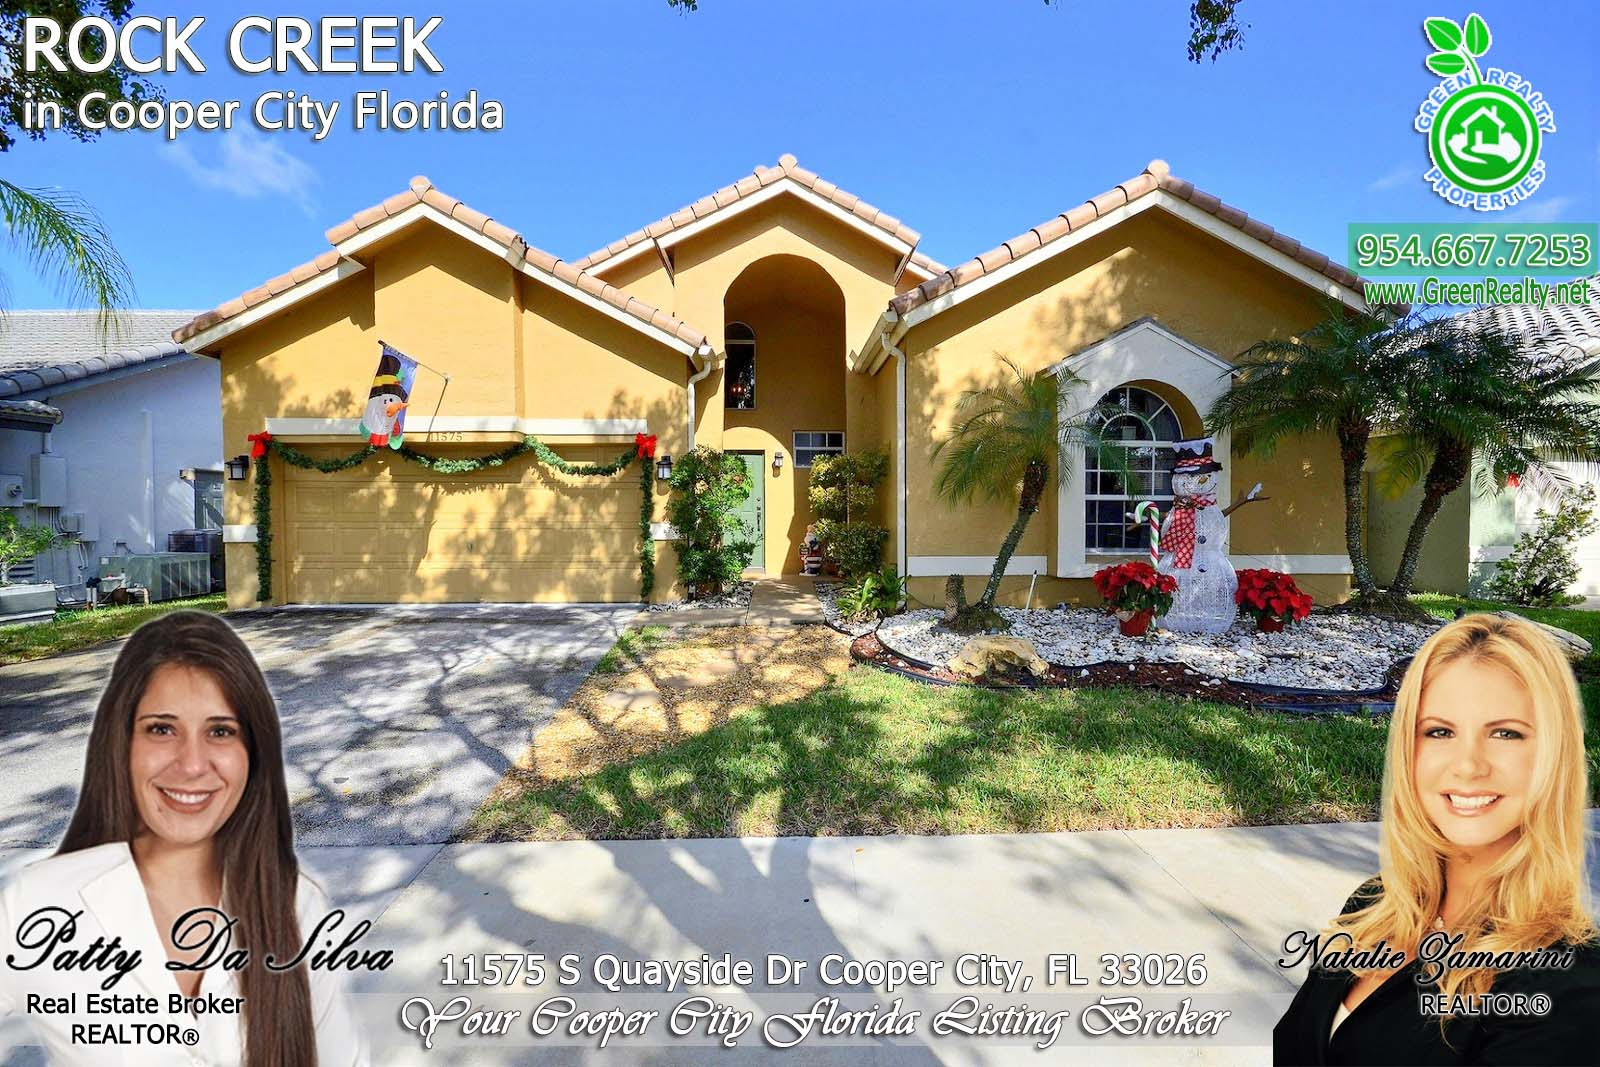 2 Homes For Sale in Rock Creek Cooper City Florida